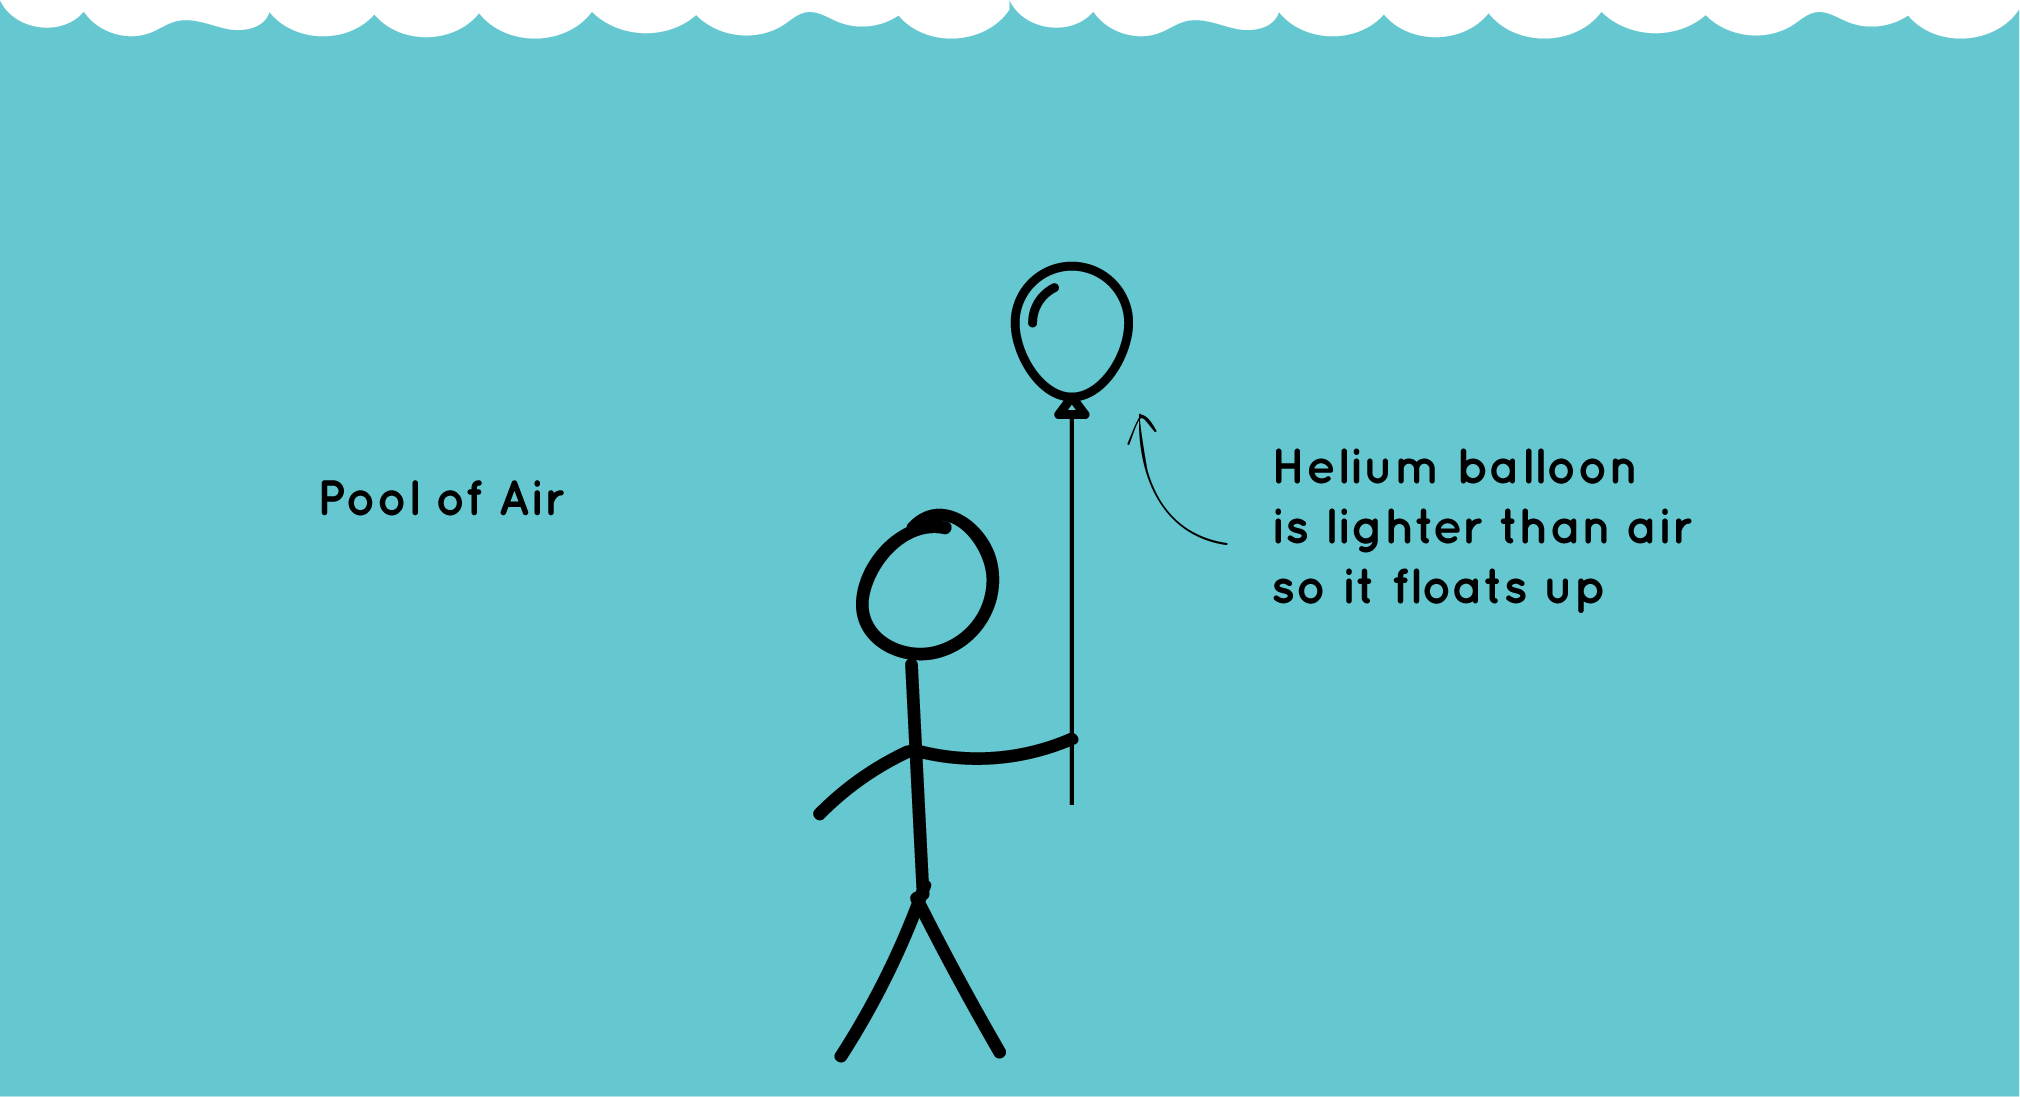 Diagram of person holding helium balloon in a pool or air